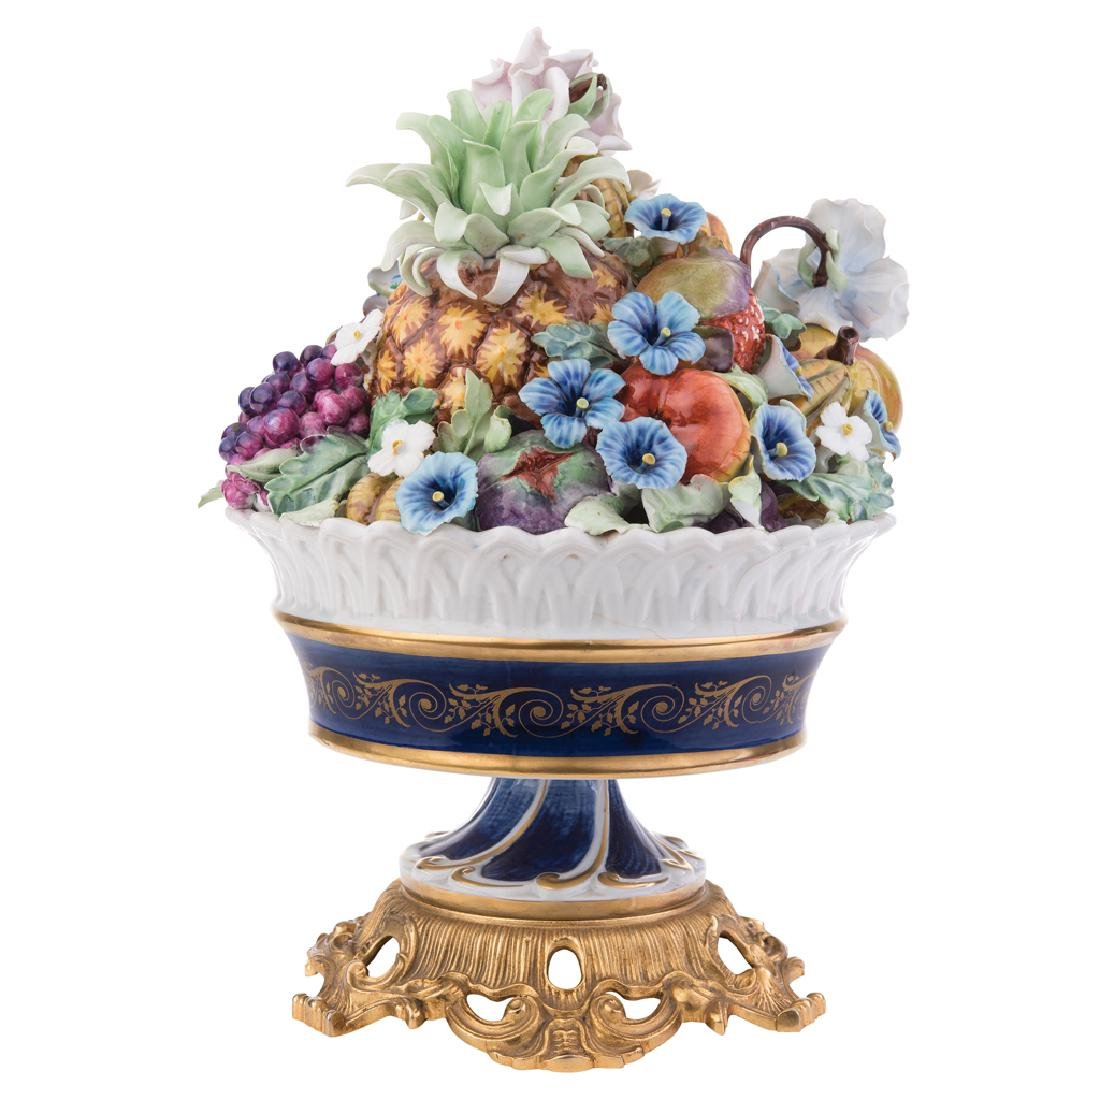 A CENTERPIECE. BASKET OF FRUITS AND FLOWERS. FRANCE,